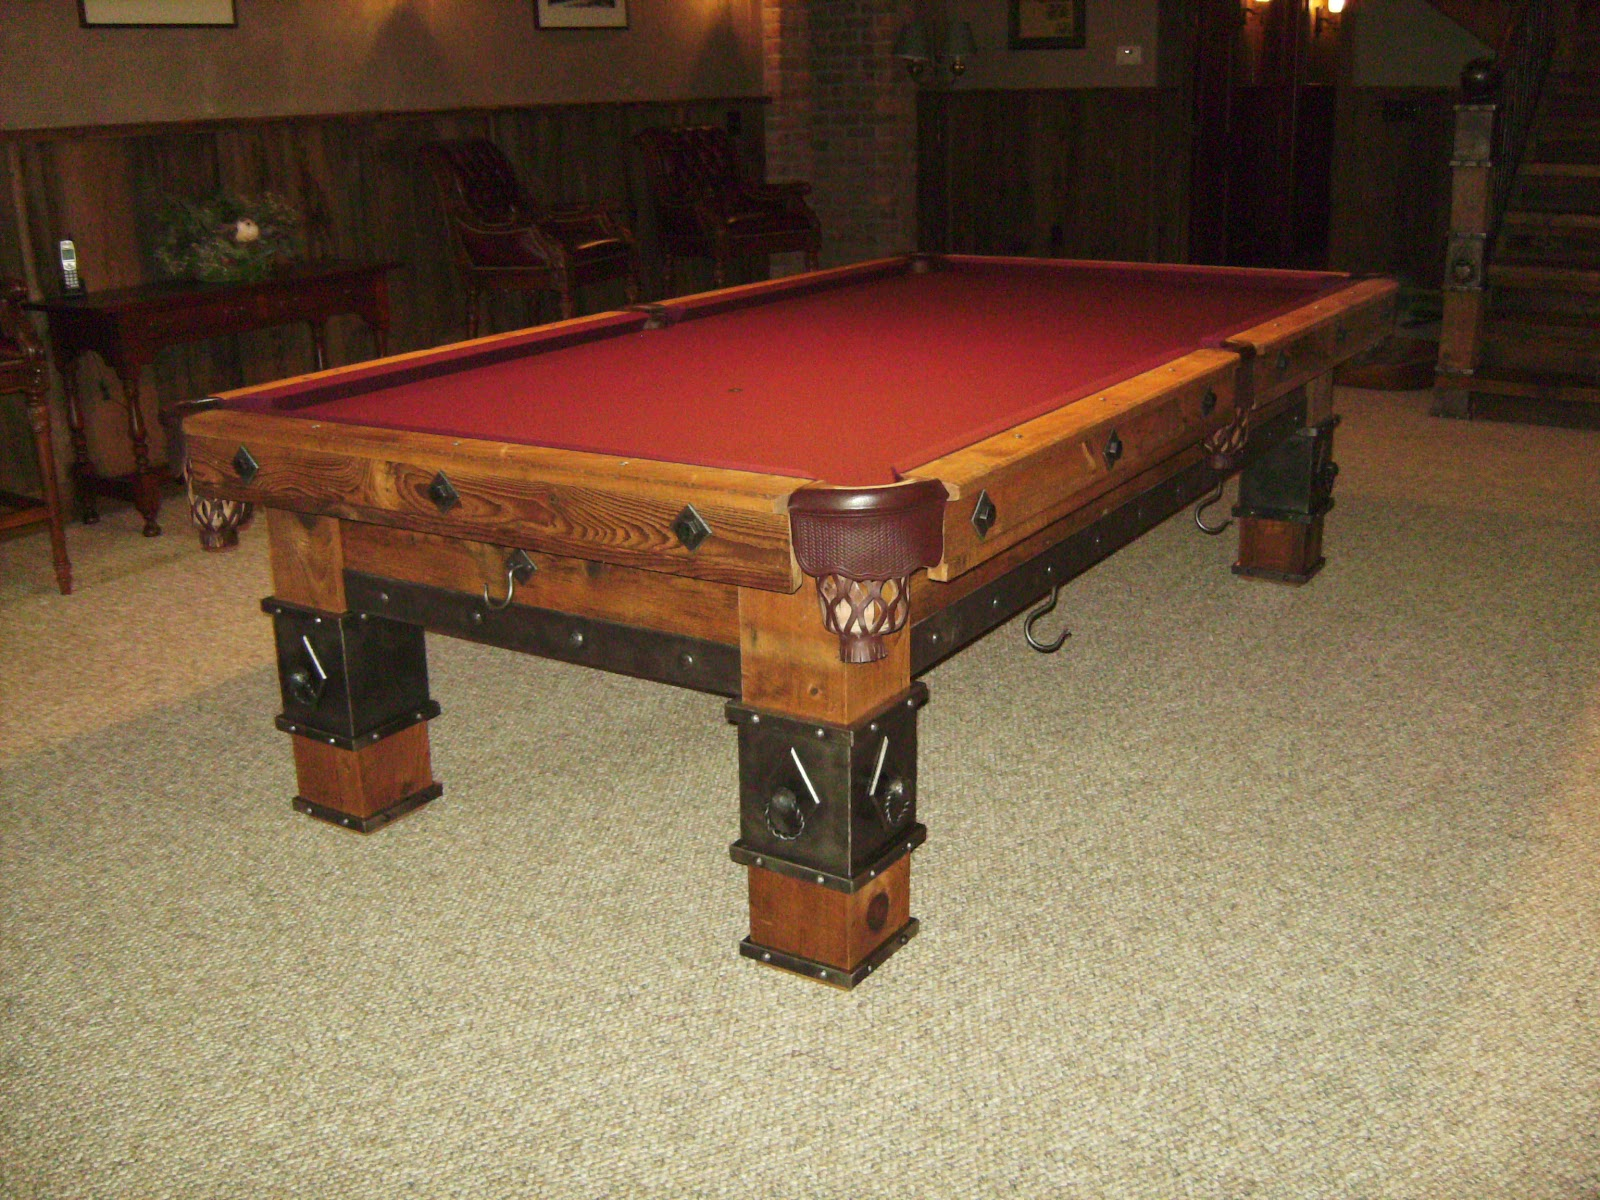 bar billiards table for sale es: a.roma 4 star conference and spa